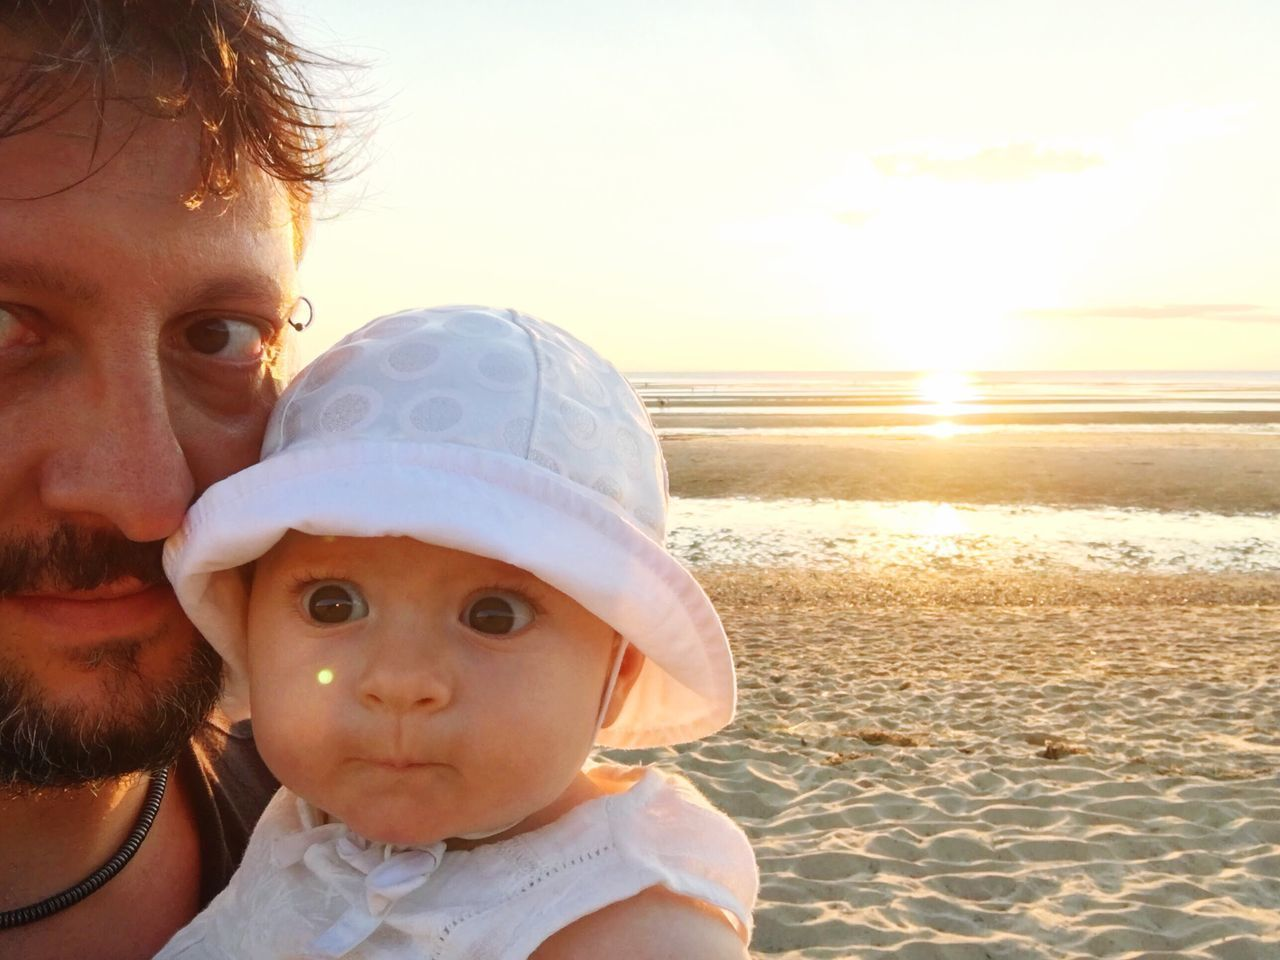 Man And Baby On Beach At Sunset